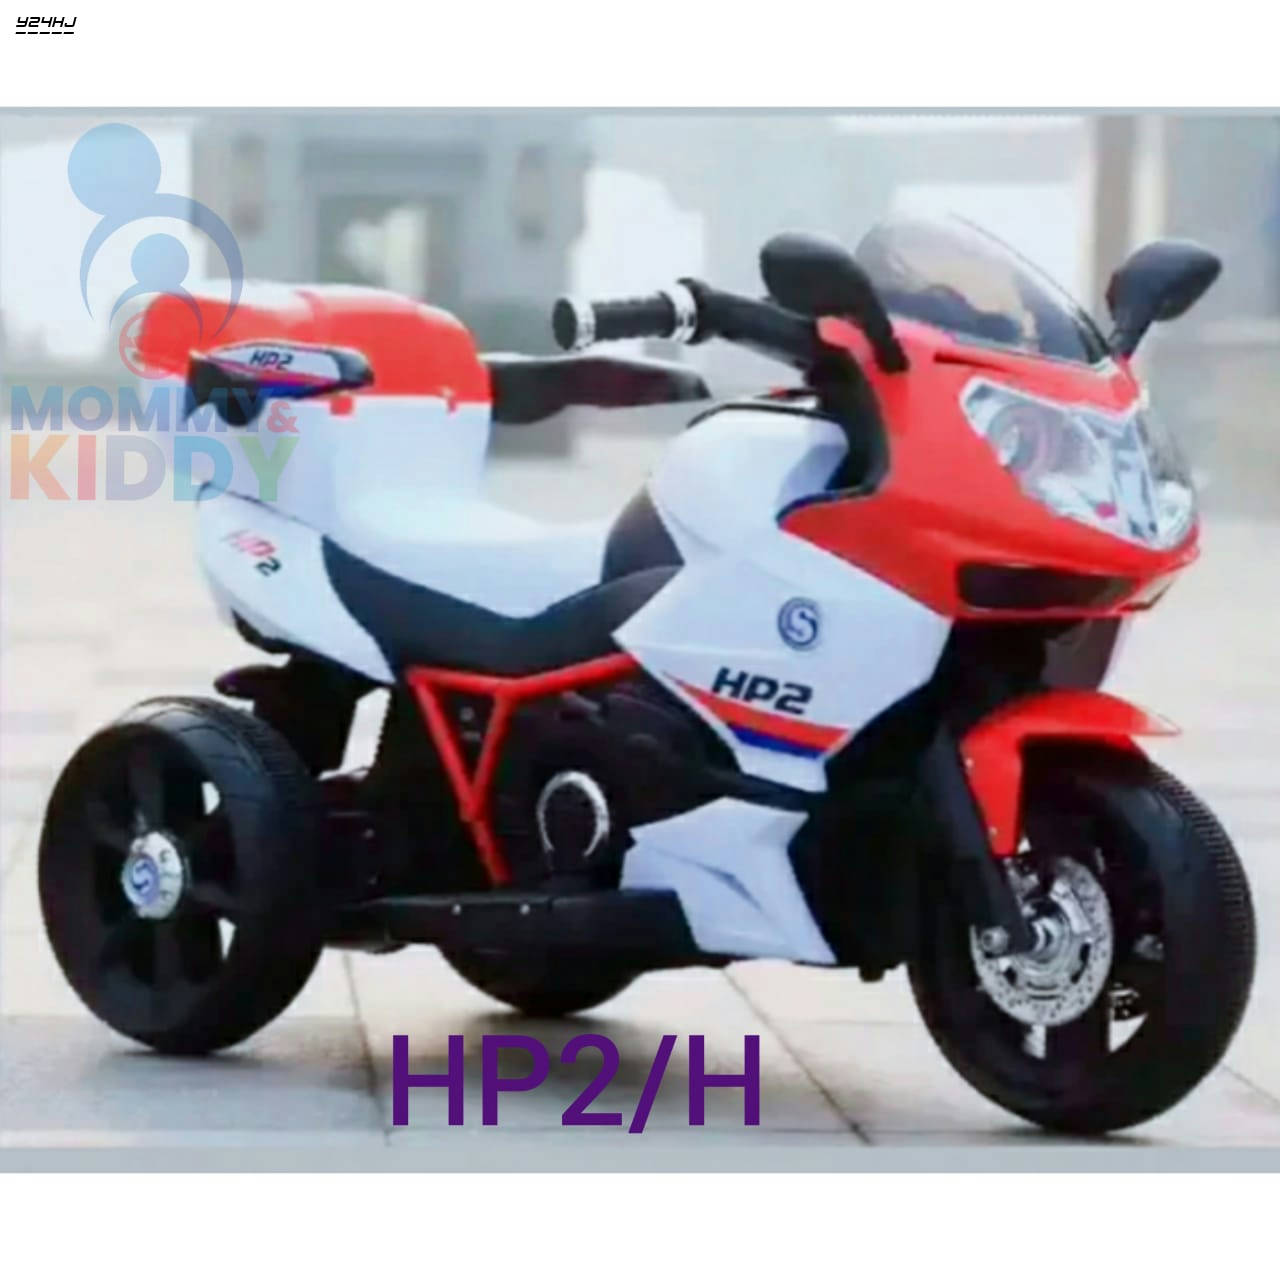 Bponi | KIDS Ride On Bike  HP2/H for Kids – 2 to 8 Years